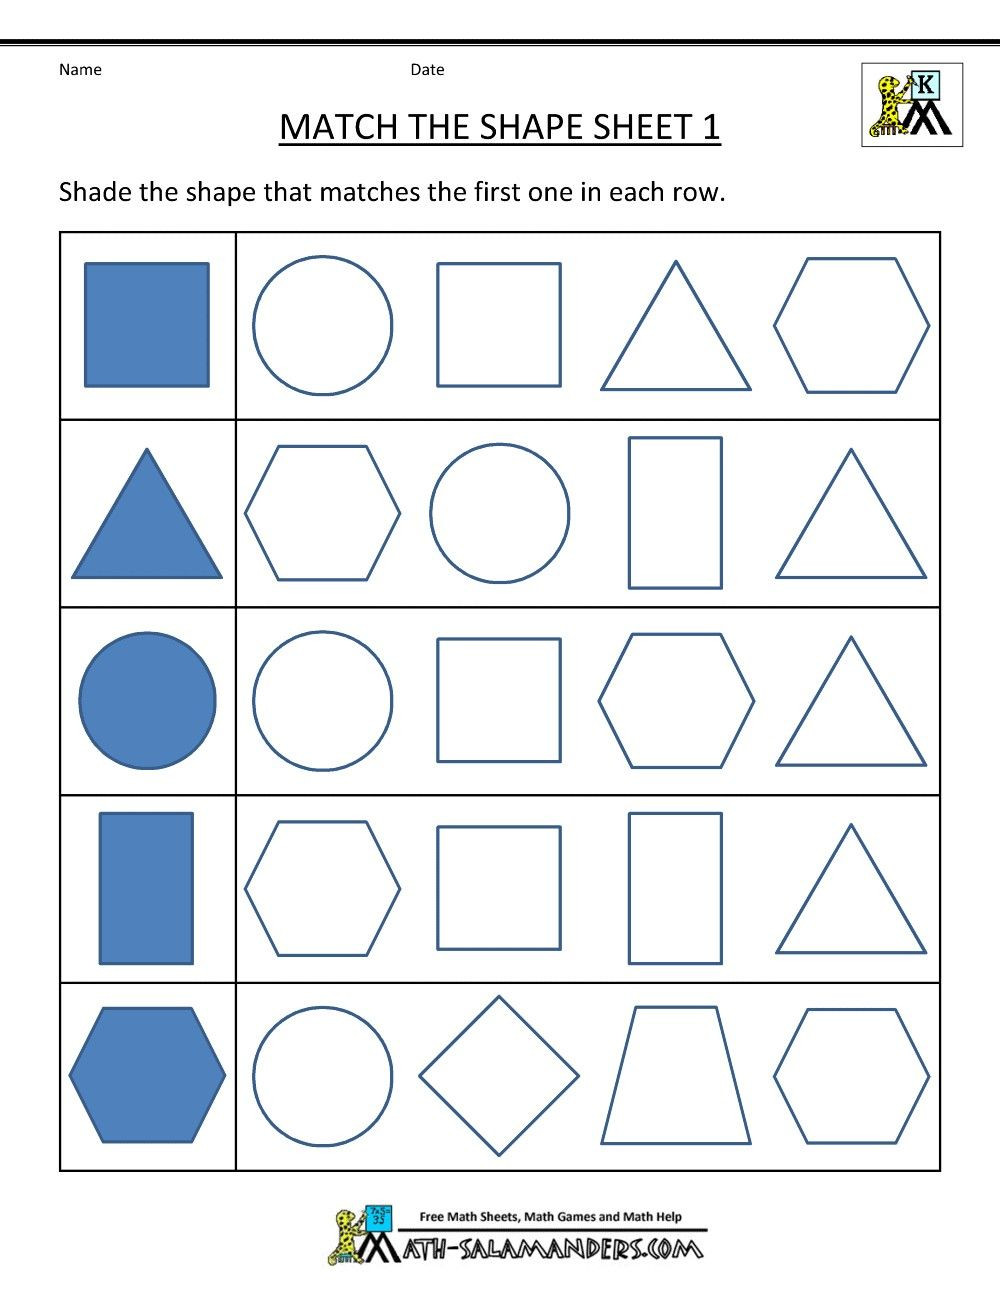 Polygon Worksheets 5th Grade 3 Worksheet 4 Matching Shapes 3d 2d Geometry 2d Shapes